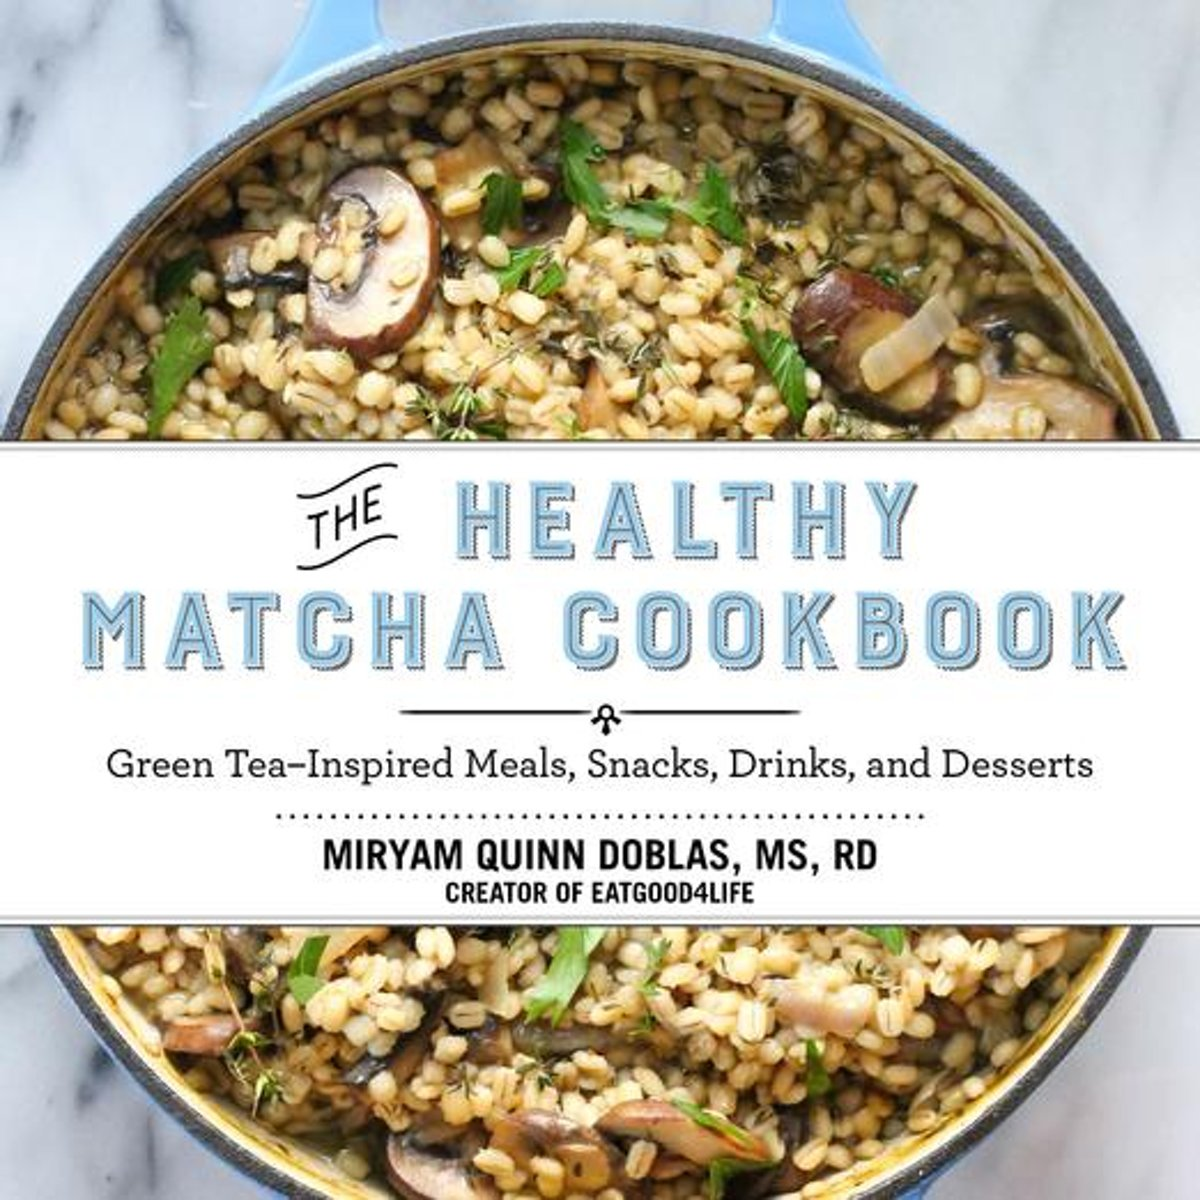 The Healthy Matcha Cookbook